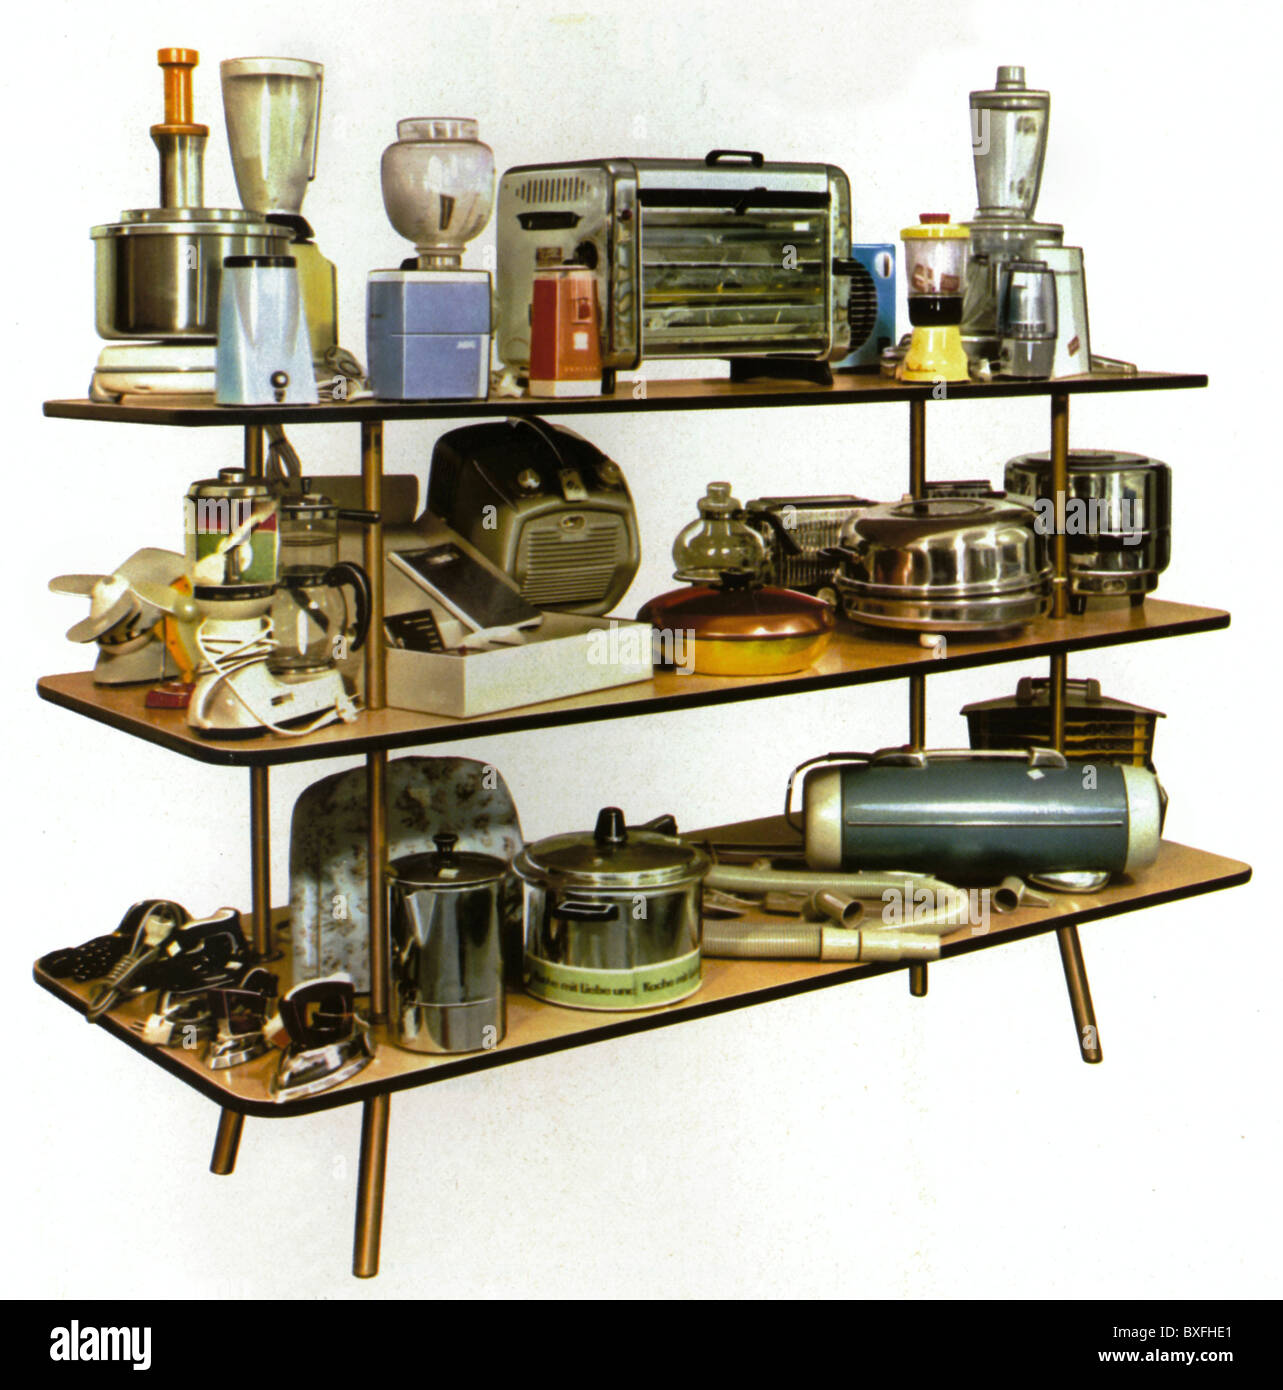 Electrical Appliances And Display Stock Photos & Electrical ... on 60's kitchen furniture, 60's refrigerators, 60's bicycles, 60's light fixtures, 60's jewelry, 60's fireplace, 60's toys, 60's living room, 60's bathrooms, 60's flowers, 60's lamps, 60's kitchen renovations,